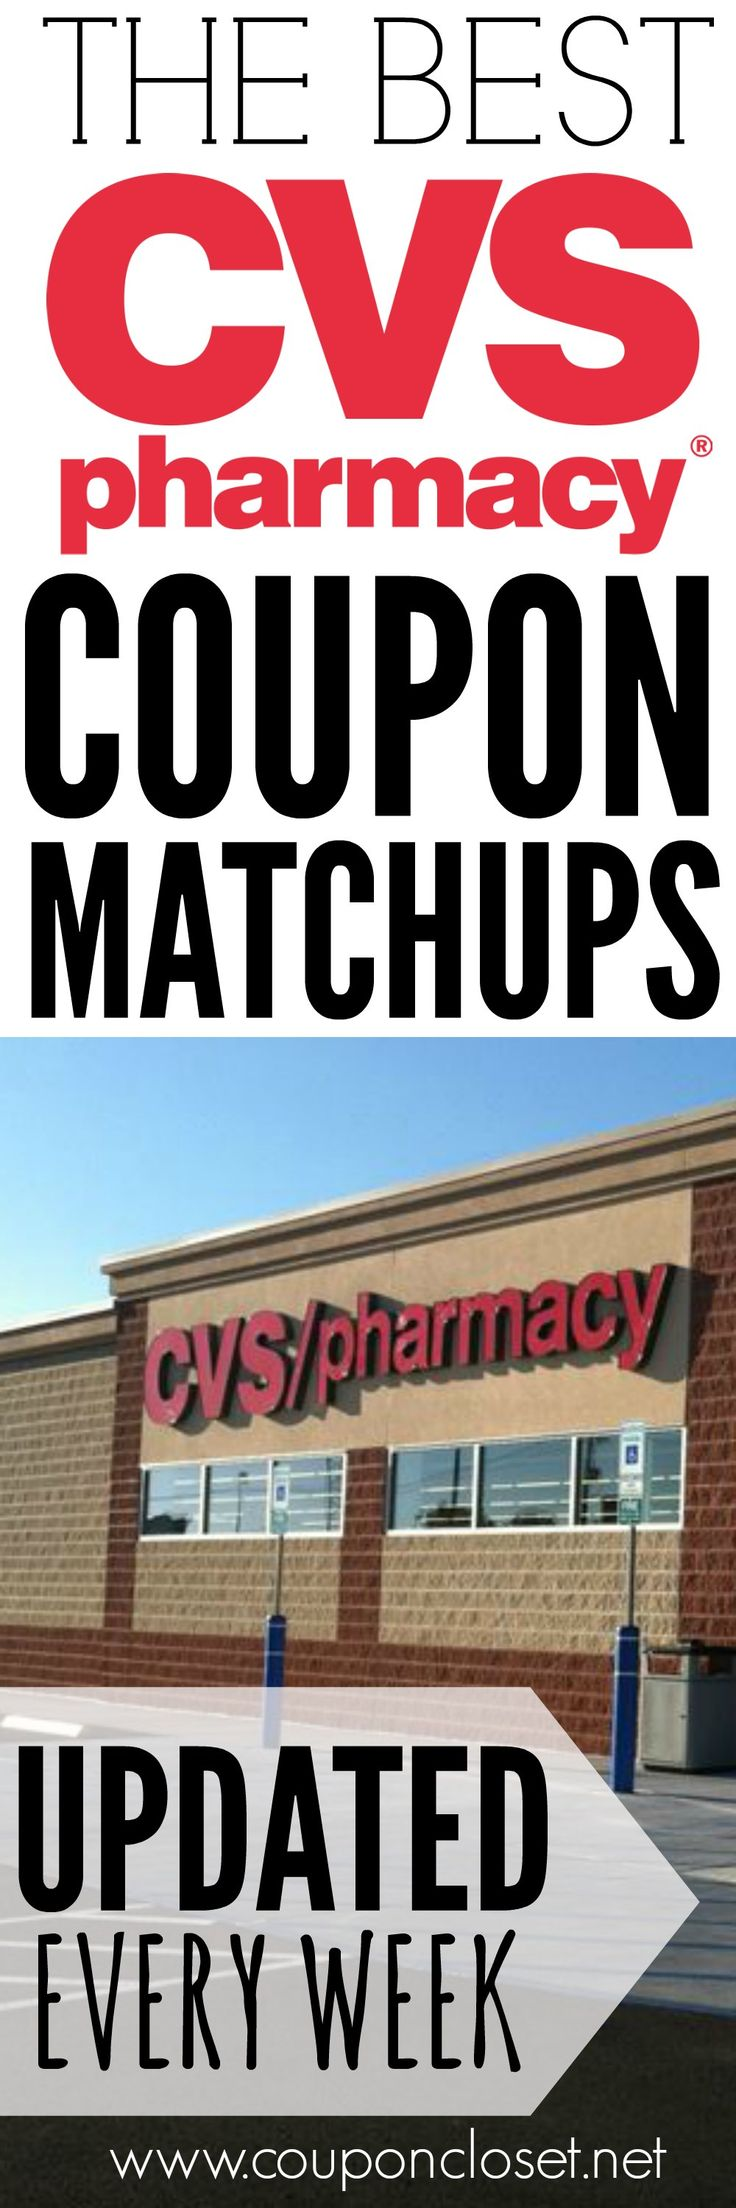 Coupon master clipping service - Best 25 Extreme Coupon Clipping Ideas On Pinterest Start Couponing Couponing For Beginners And Coupons For